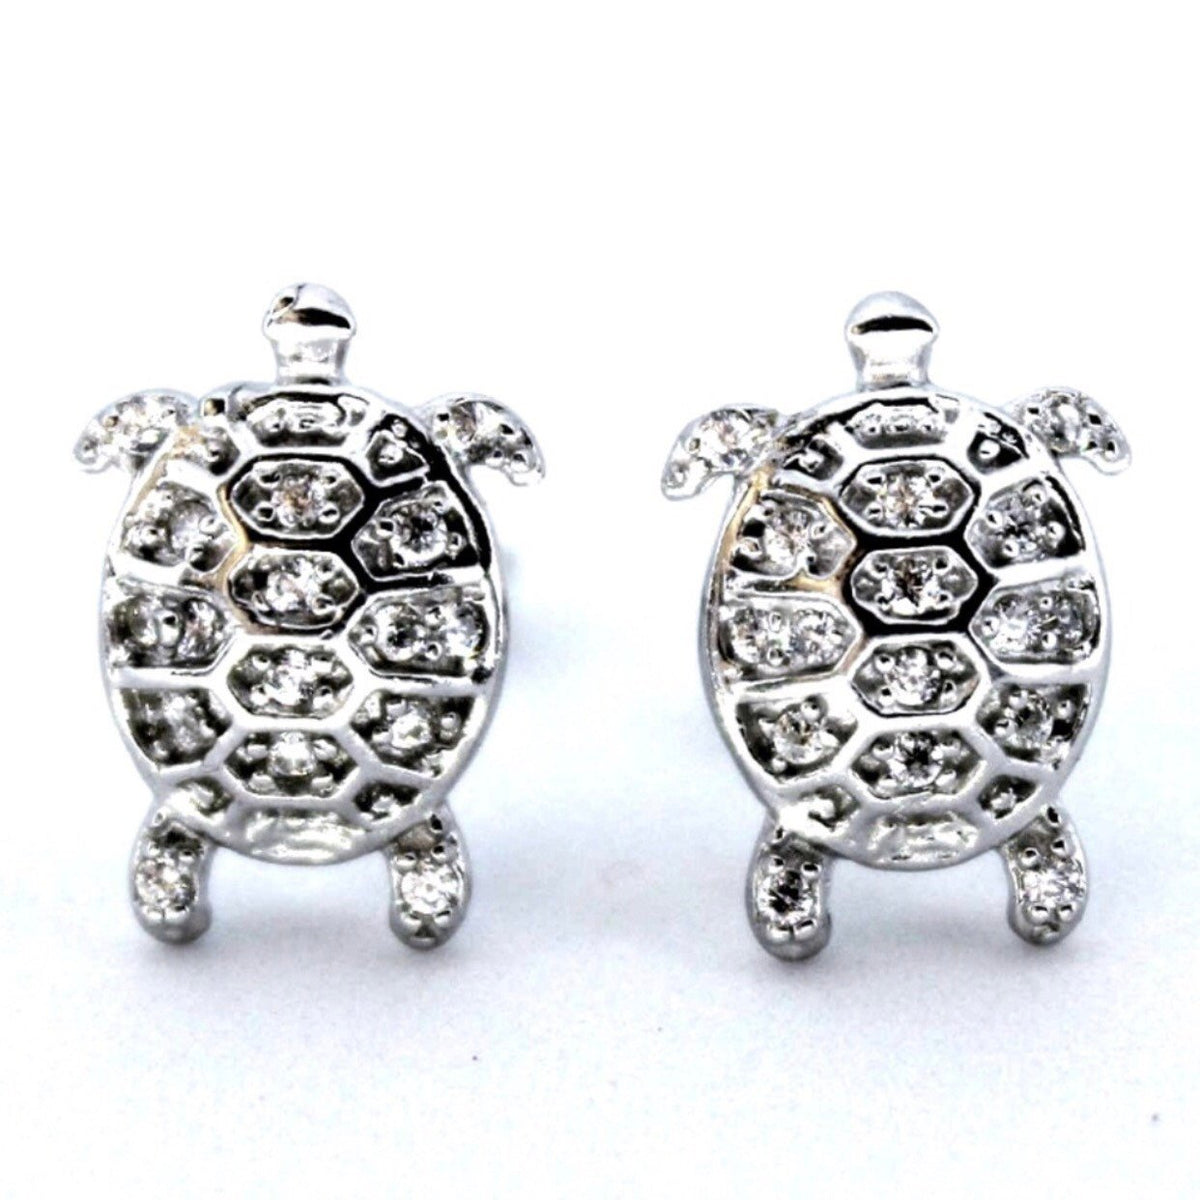 14K White Gold On 925 Sterling Silver Sea Turtle Earrings - 3 Royal Dazzy